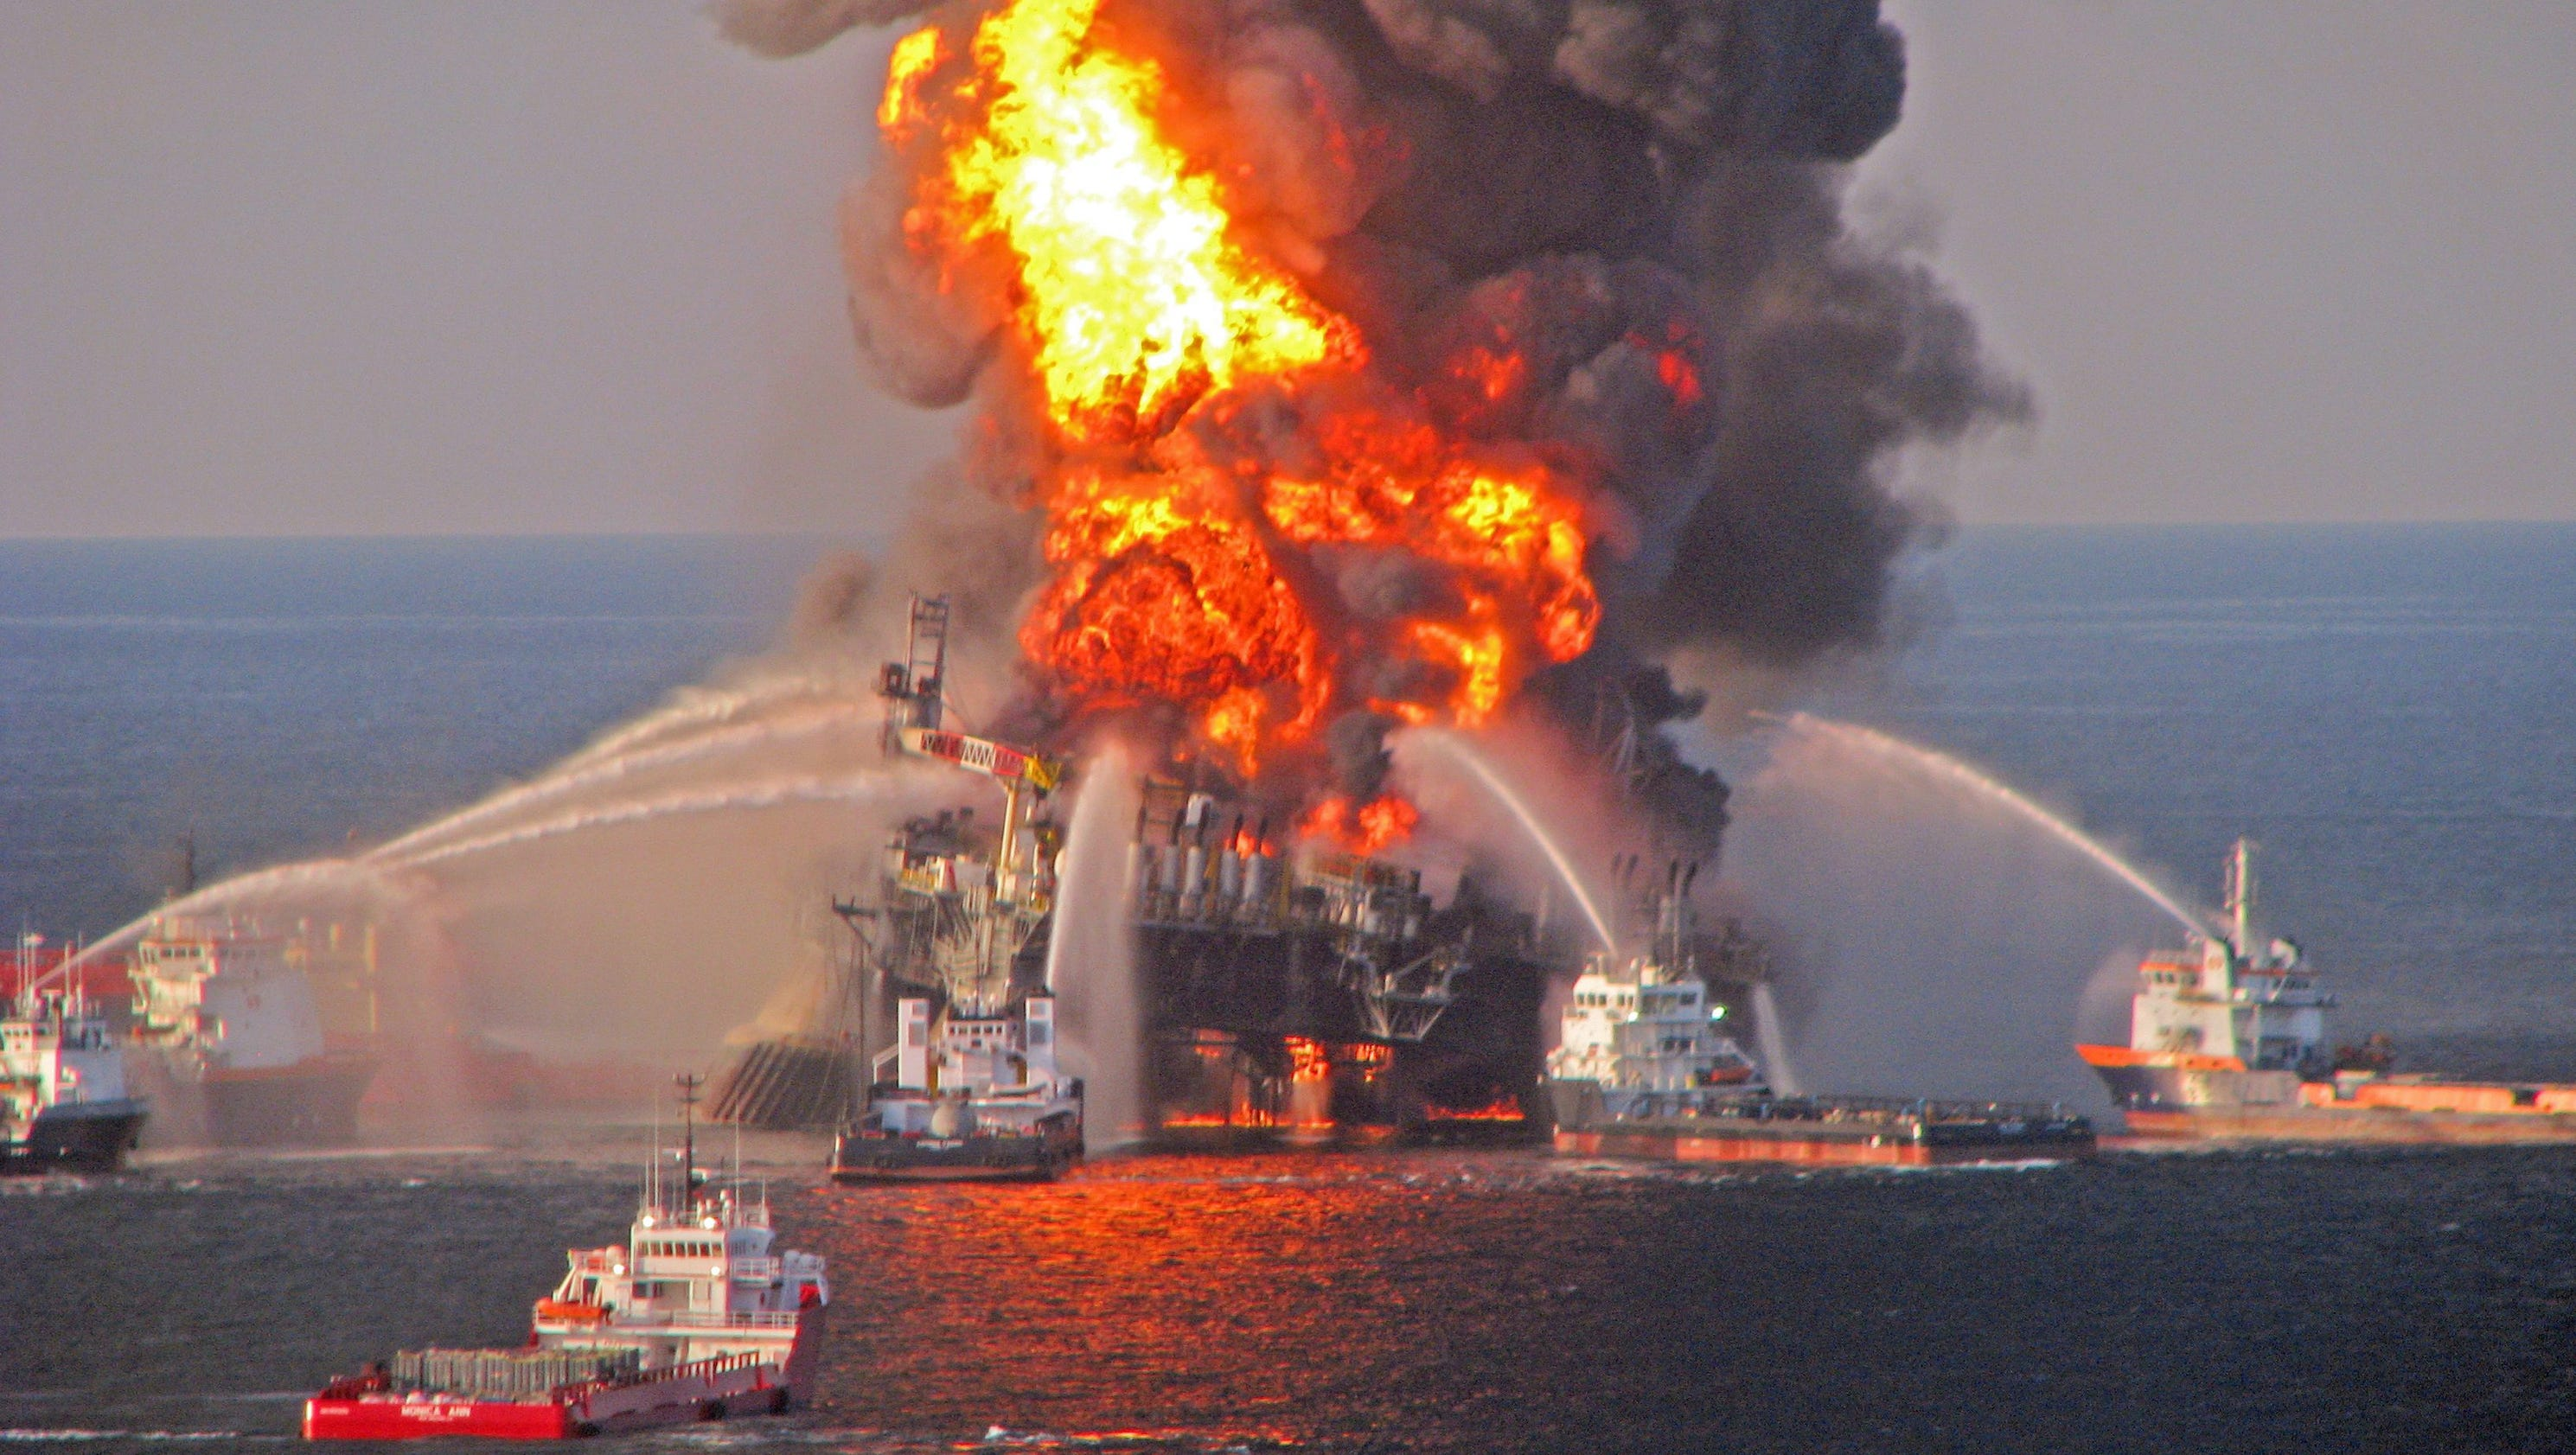 case study faulty decision making is a cause of the deepwater horizon disaster On 20 april 2010, the offshore drilling rig deepwater horizon exploded and caught fire in us waters of the gulf of mexico 11 workers were killed in the explosion and 17 injured the rig was owned by transocean on lease to bp, which was the main operator and developer of the site, with anadarko.